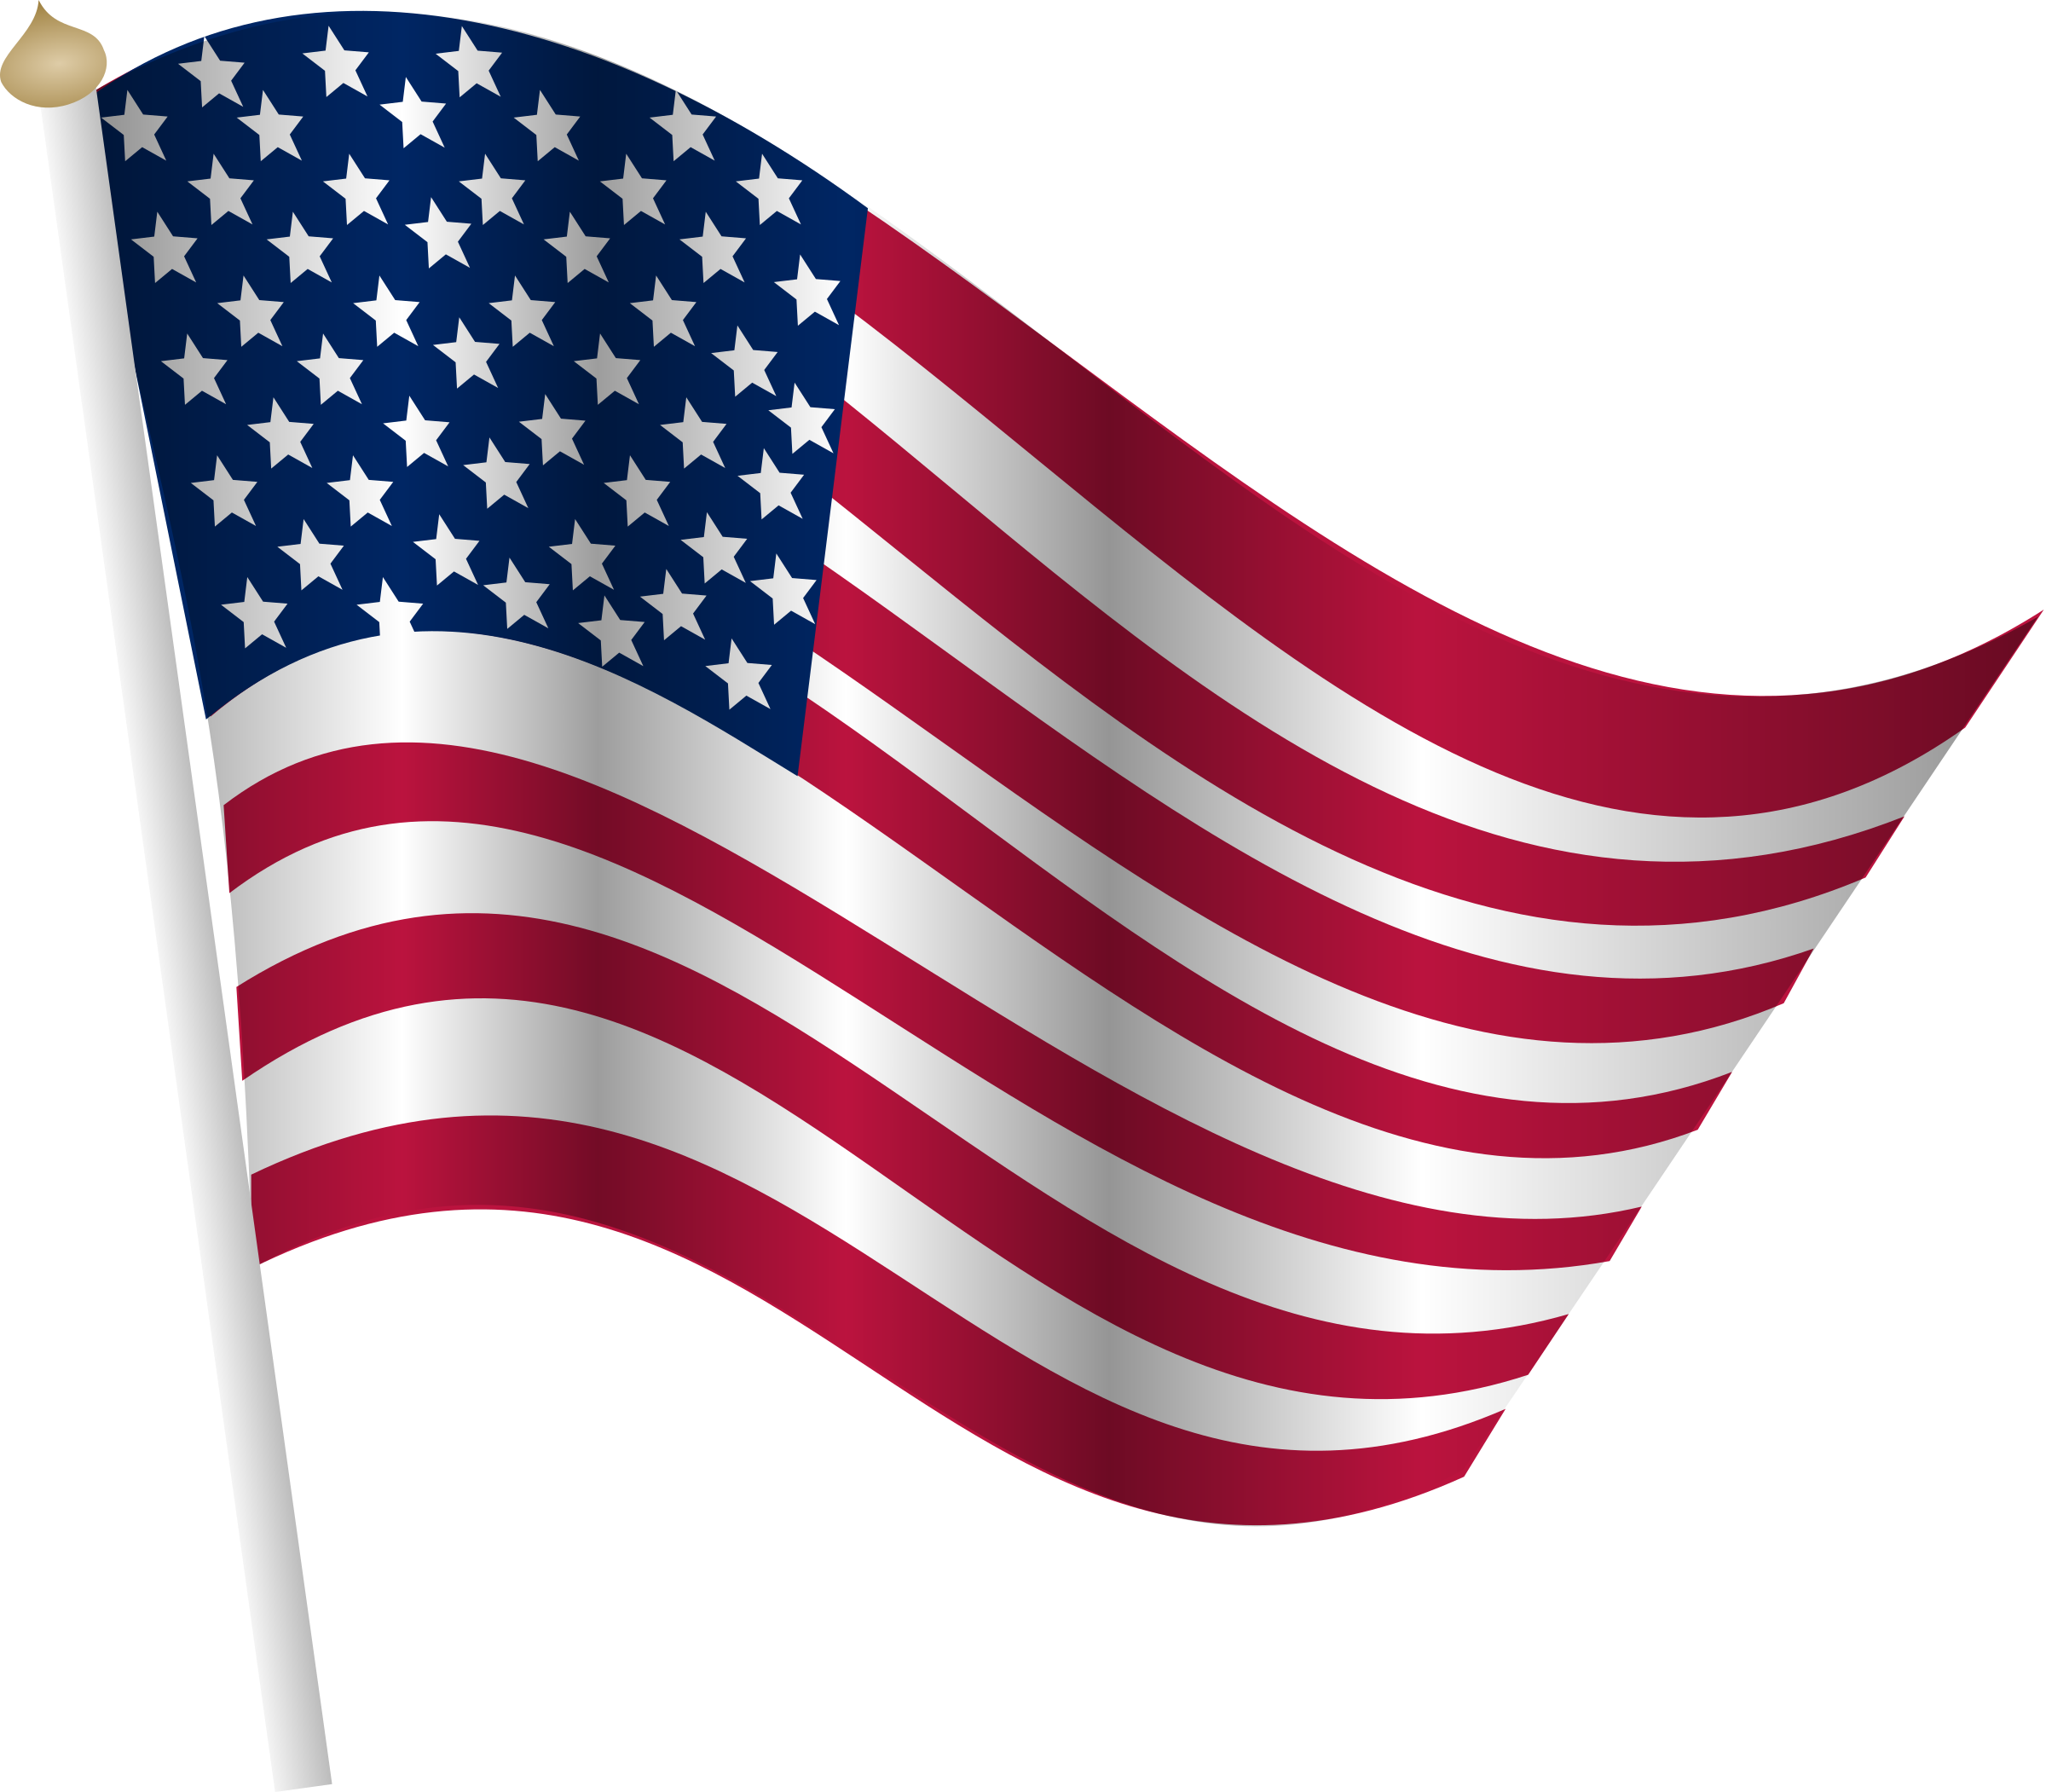 American big image png. Knot clipart flag